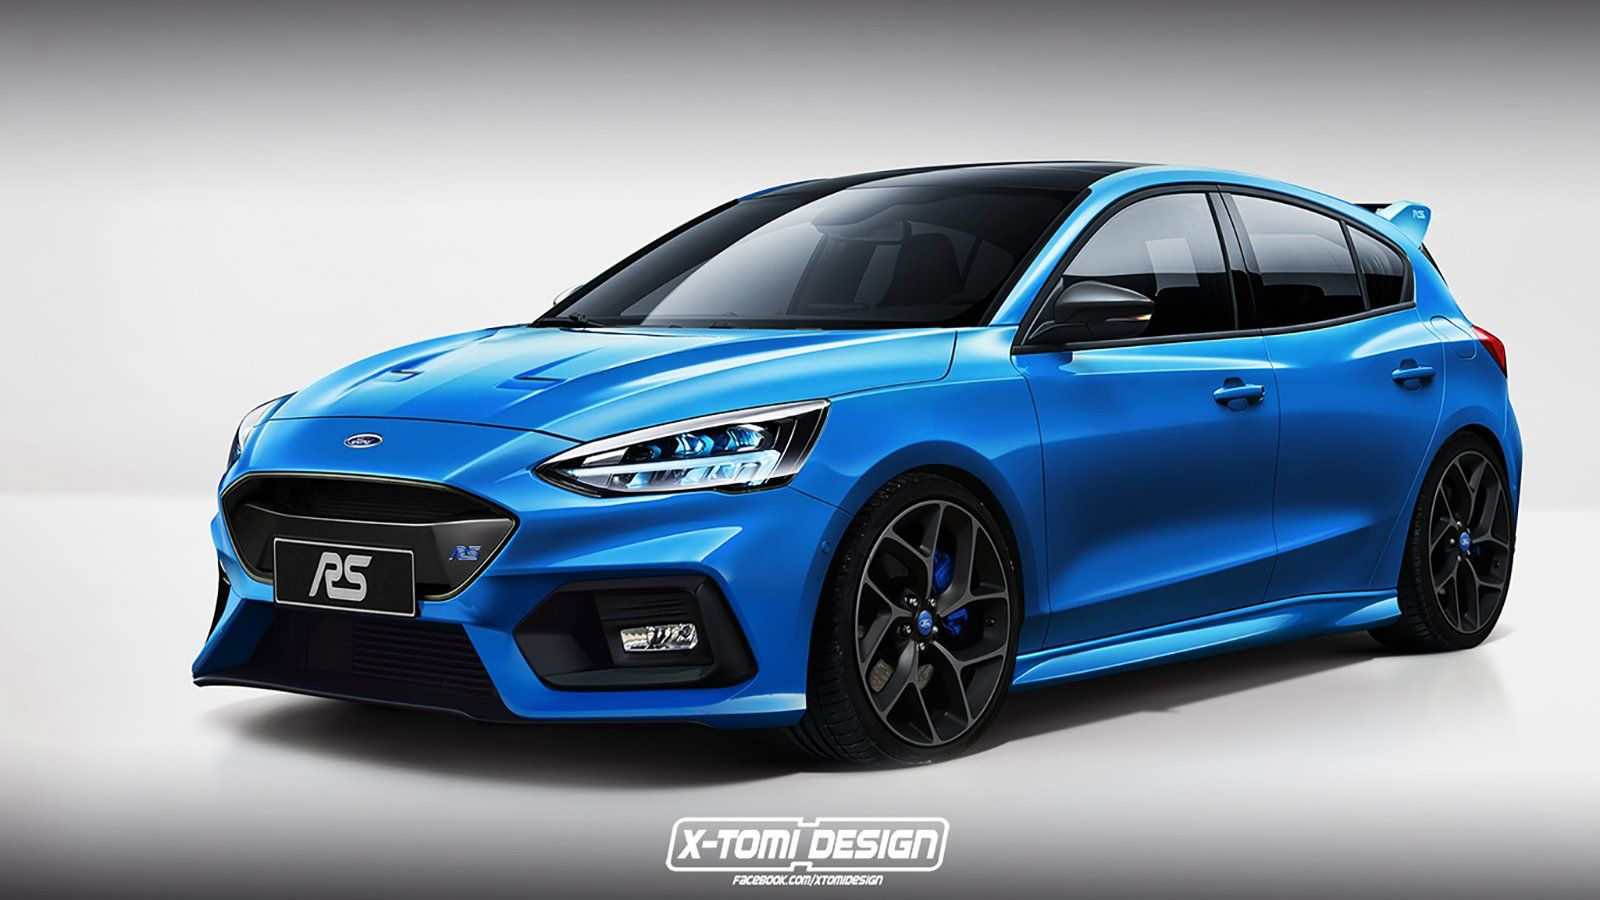 2019 Ford Focus Rs Top Speed Ford Focus Rs New Ford Focus Ford Focus